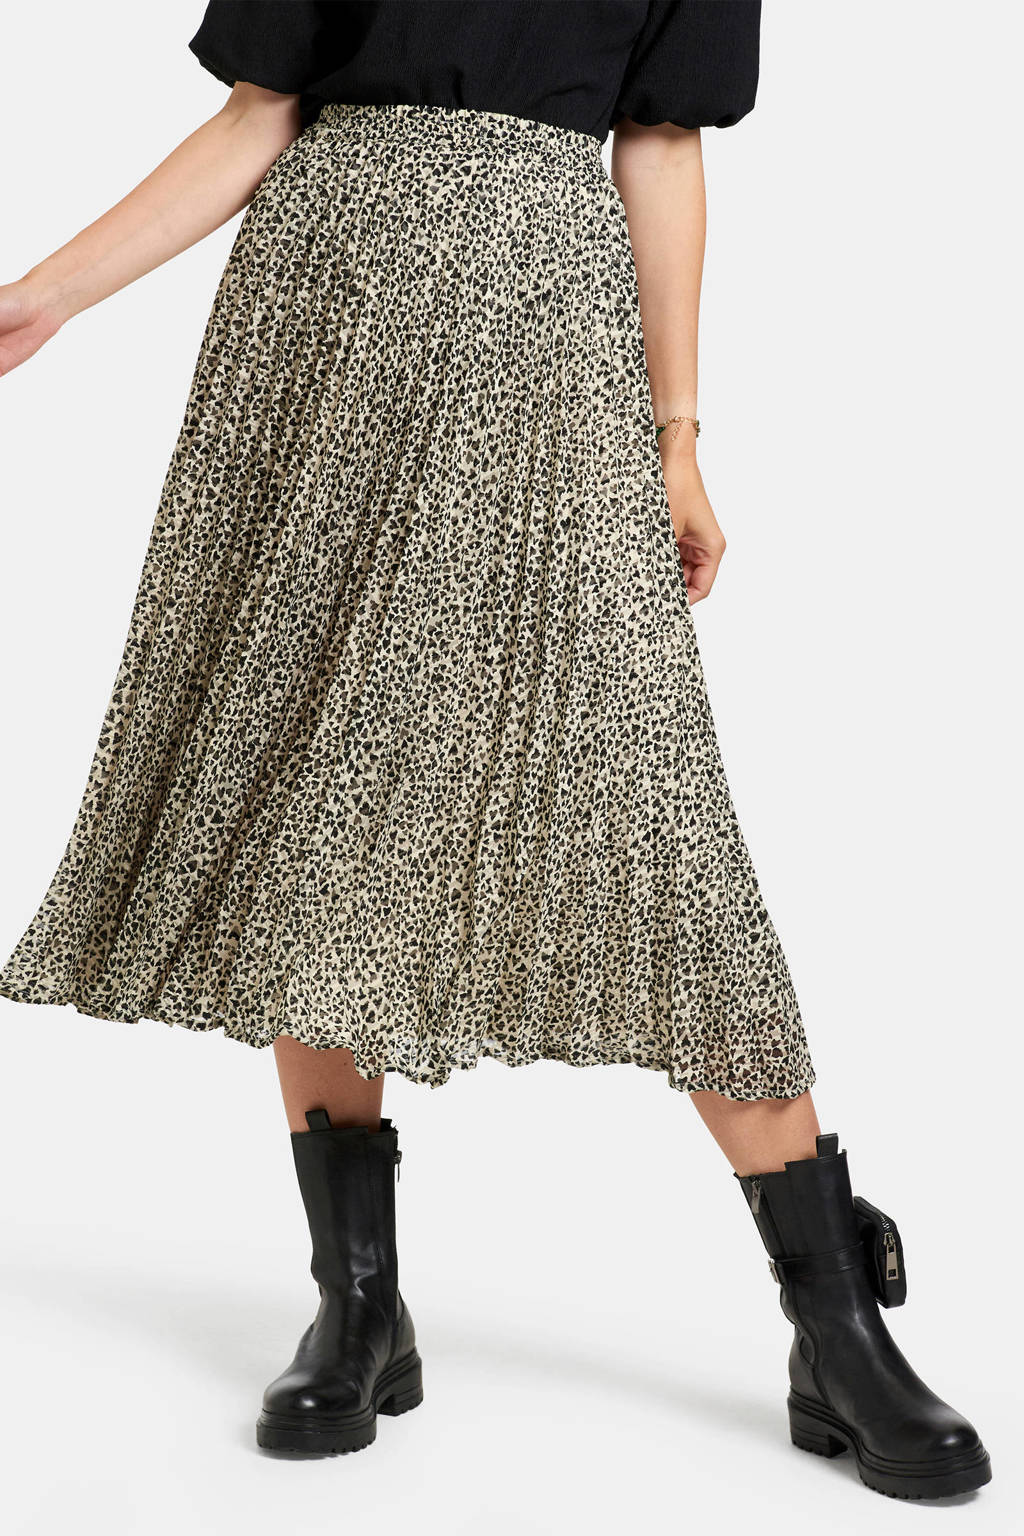 Eksept by Shoeby rok met all over print beige/zwart, Beige/zwart